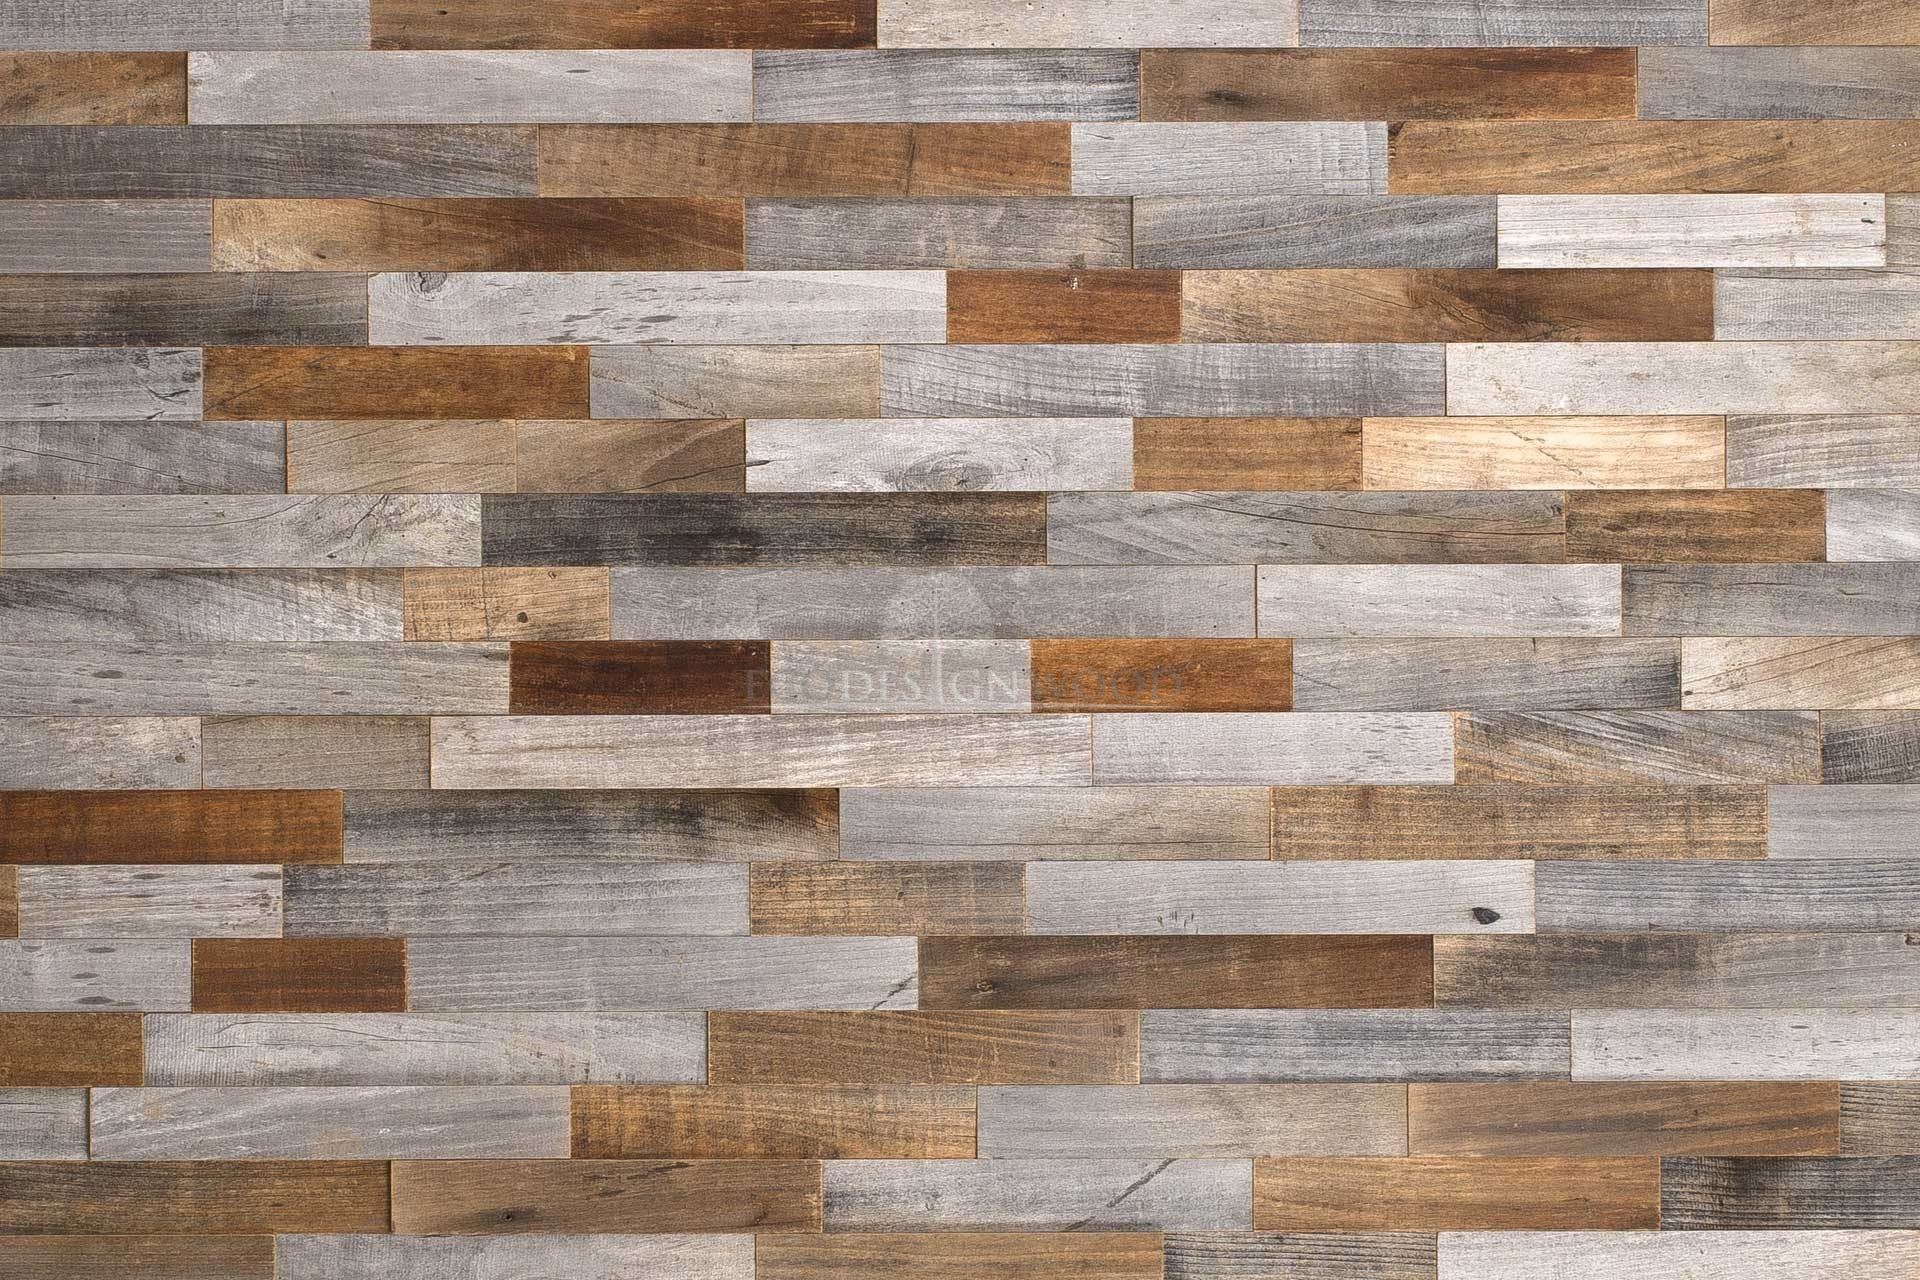 New york ecodesignwood reclaimed wood wall panels for Reclaimed wood new york